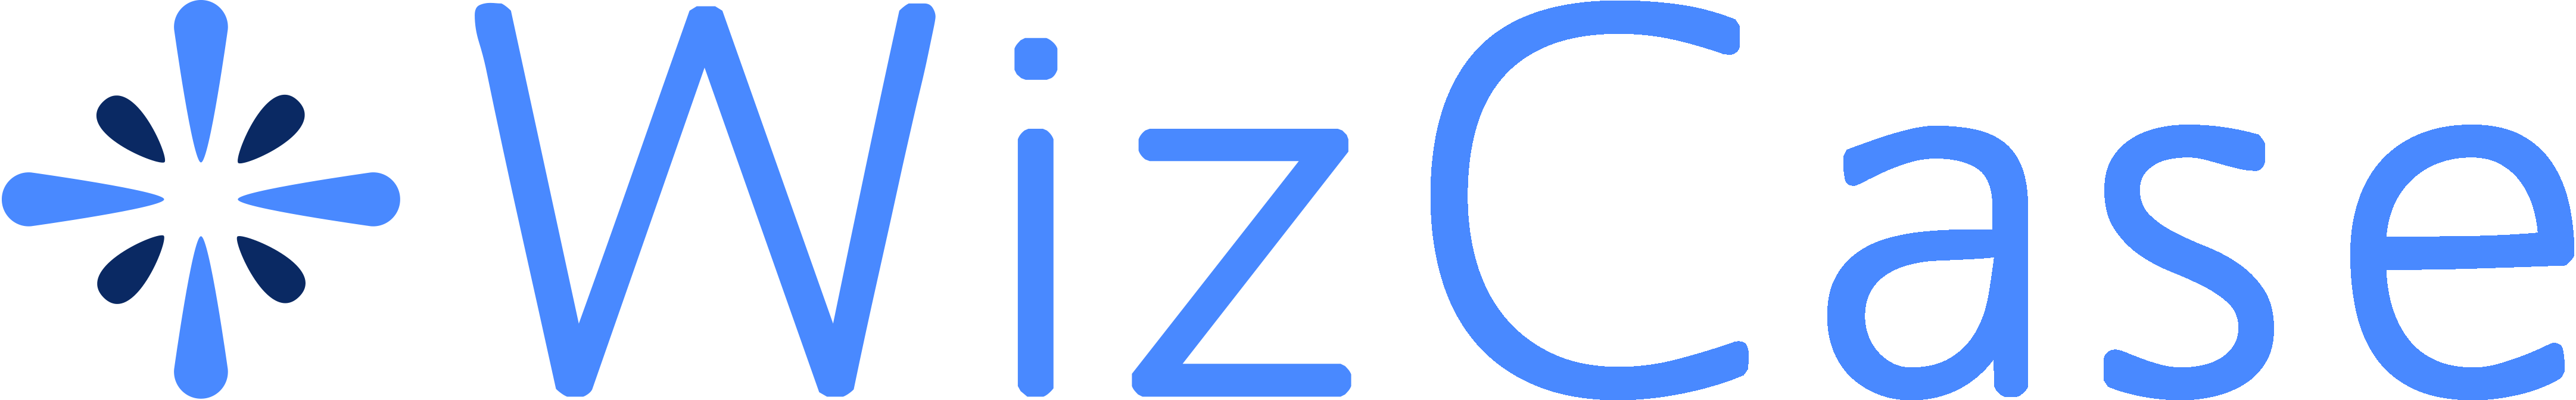 Wizcase logo